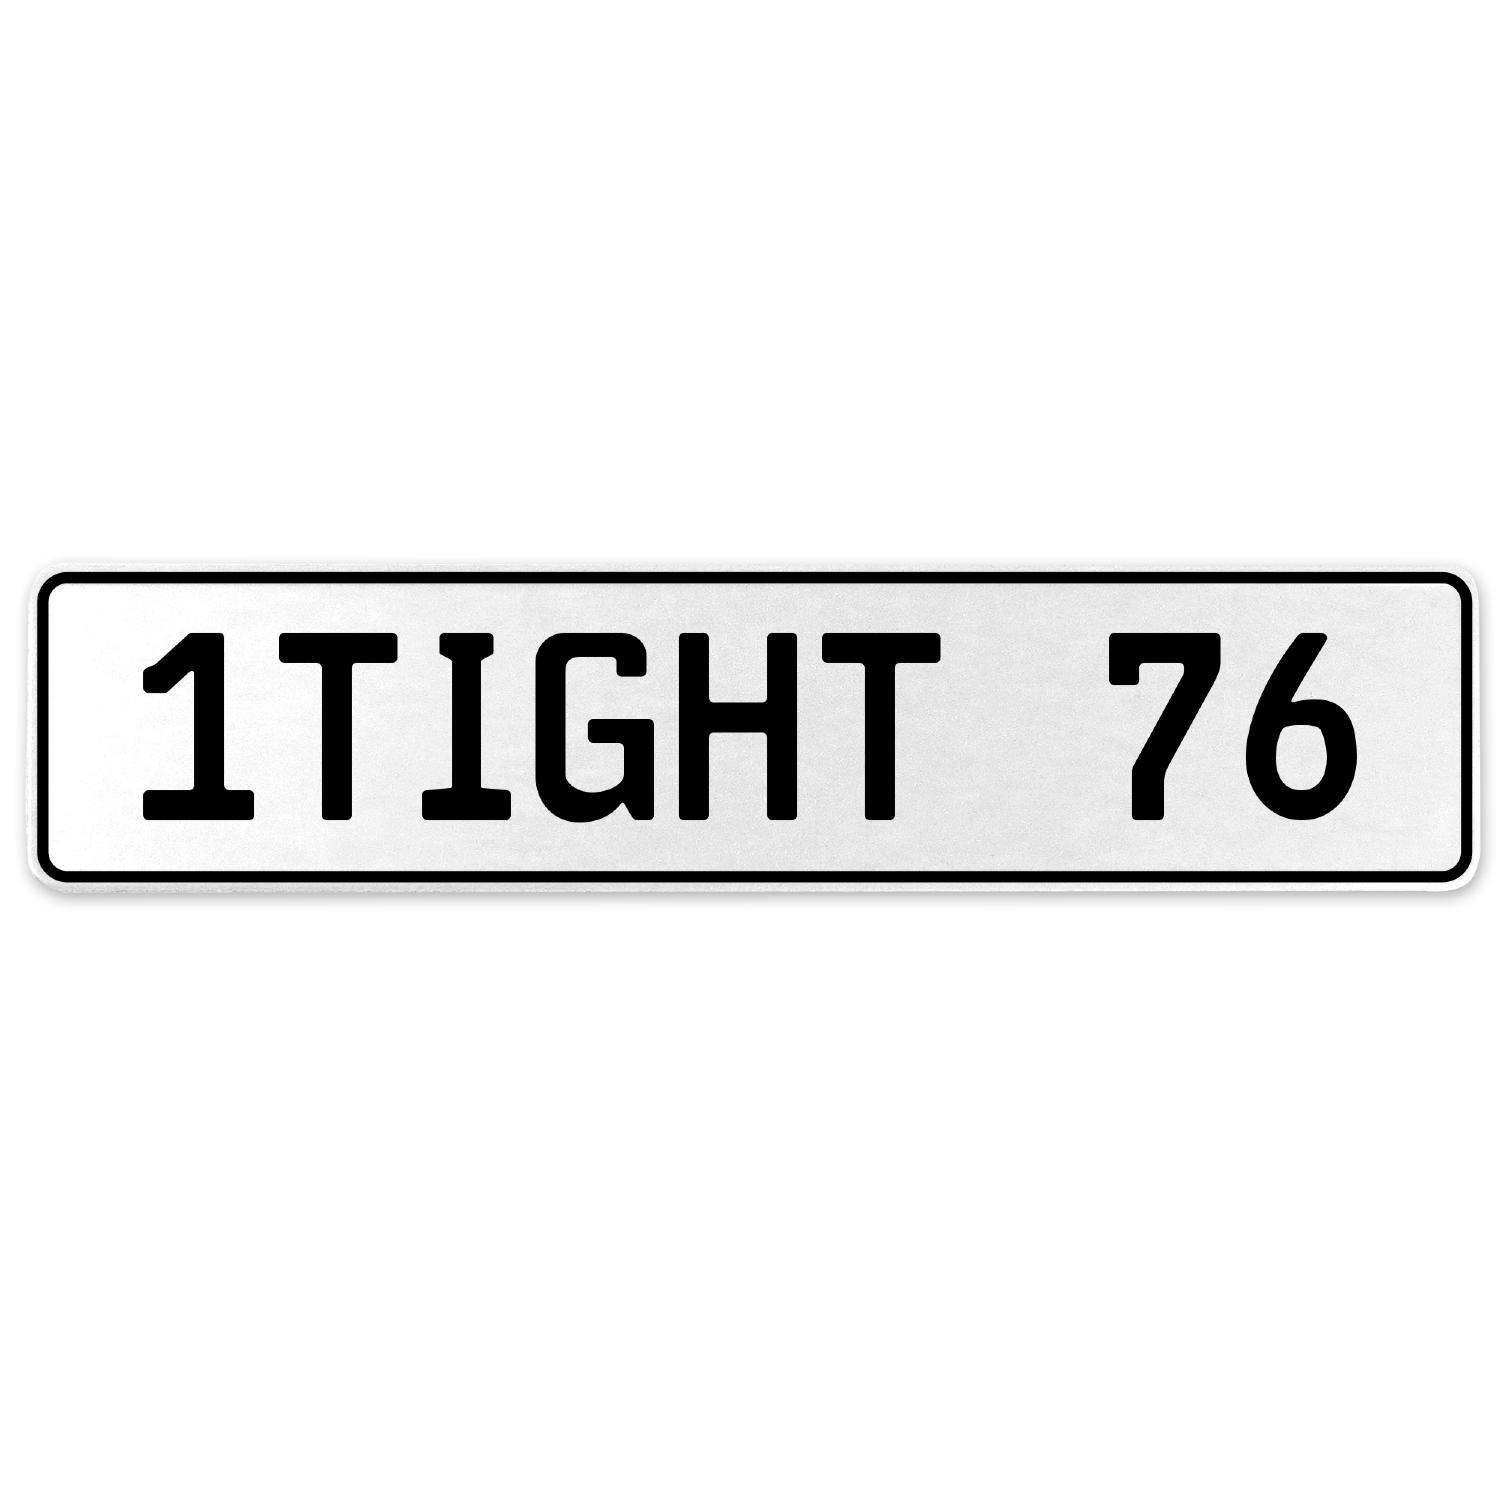 Vintage Parts 554871 1TIGHT 76 White Stamped Aluminum European License Plate